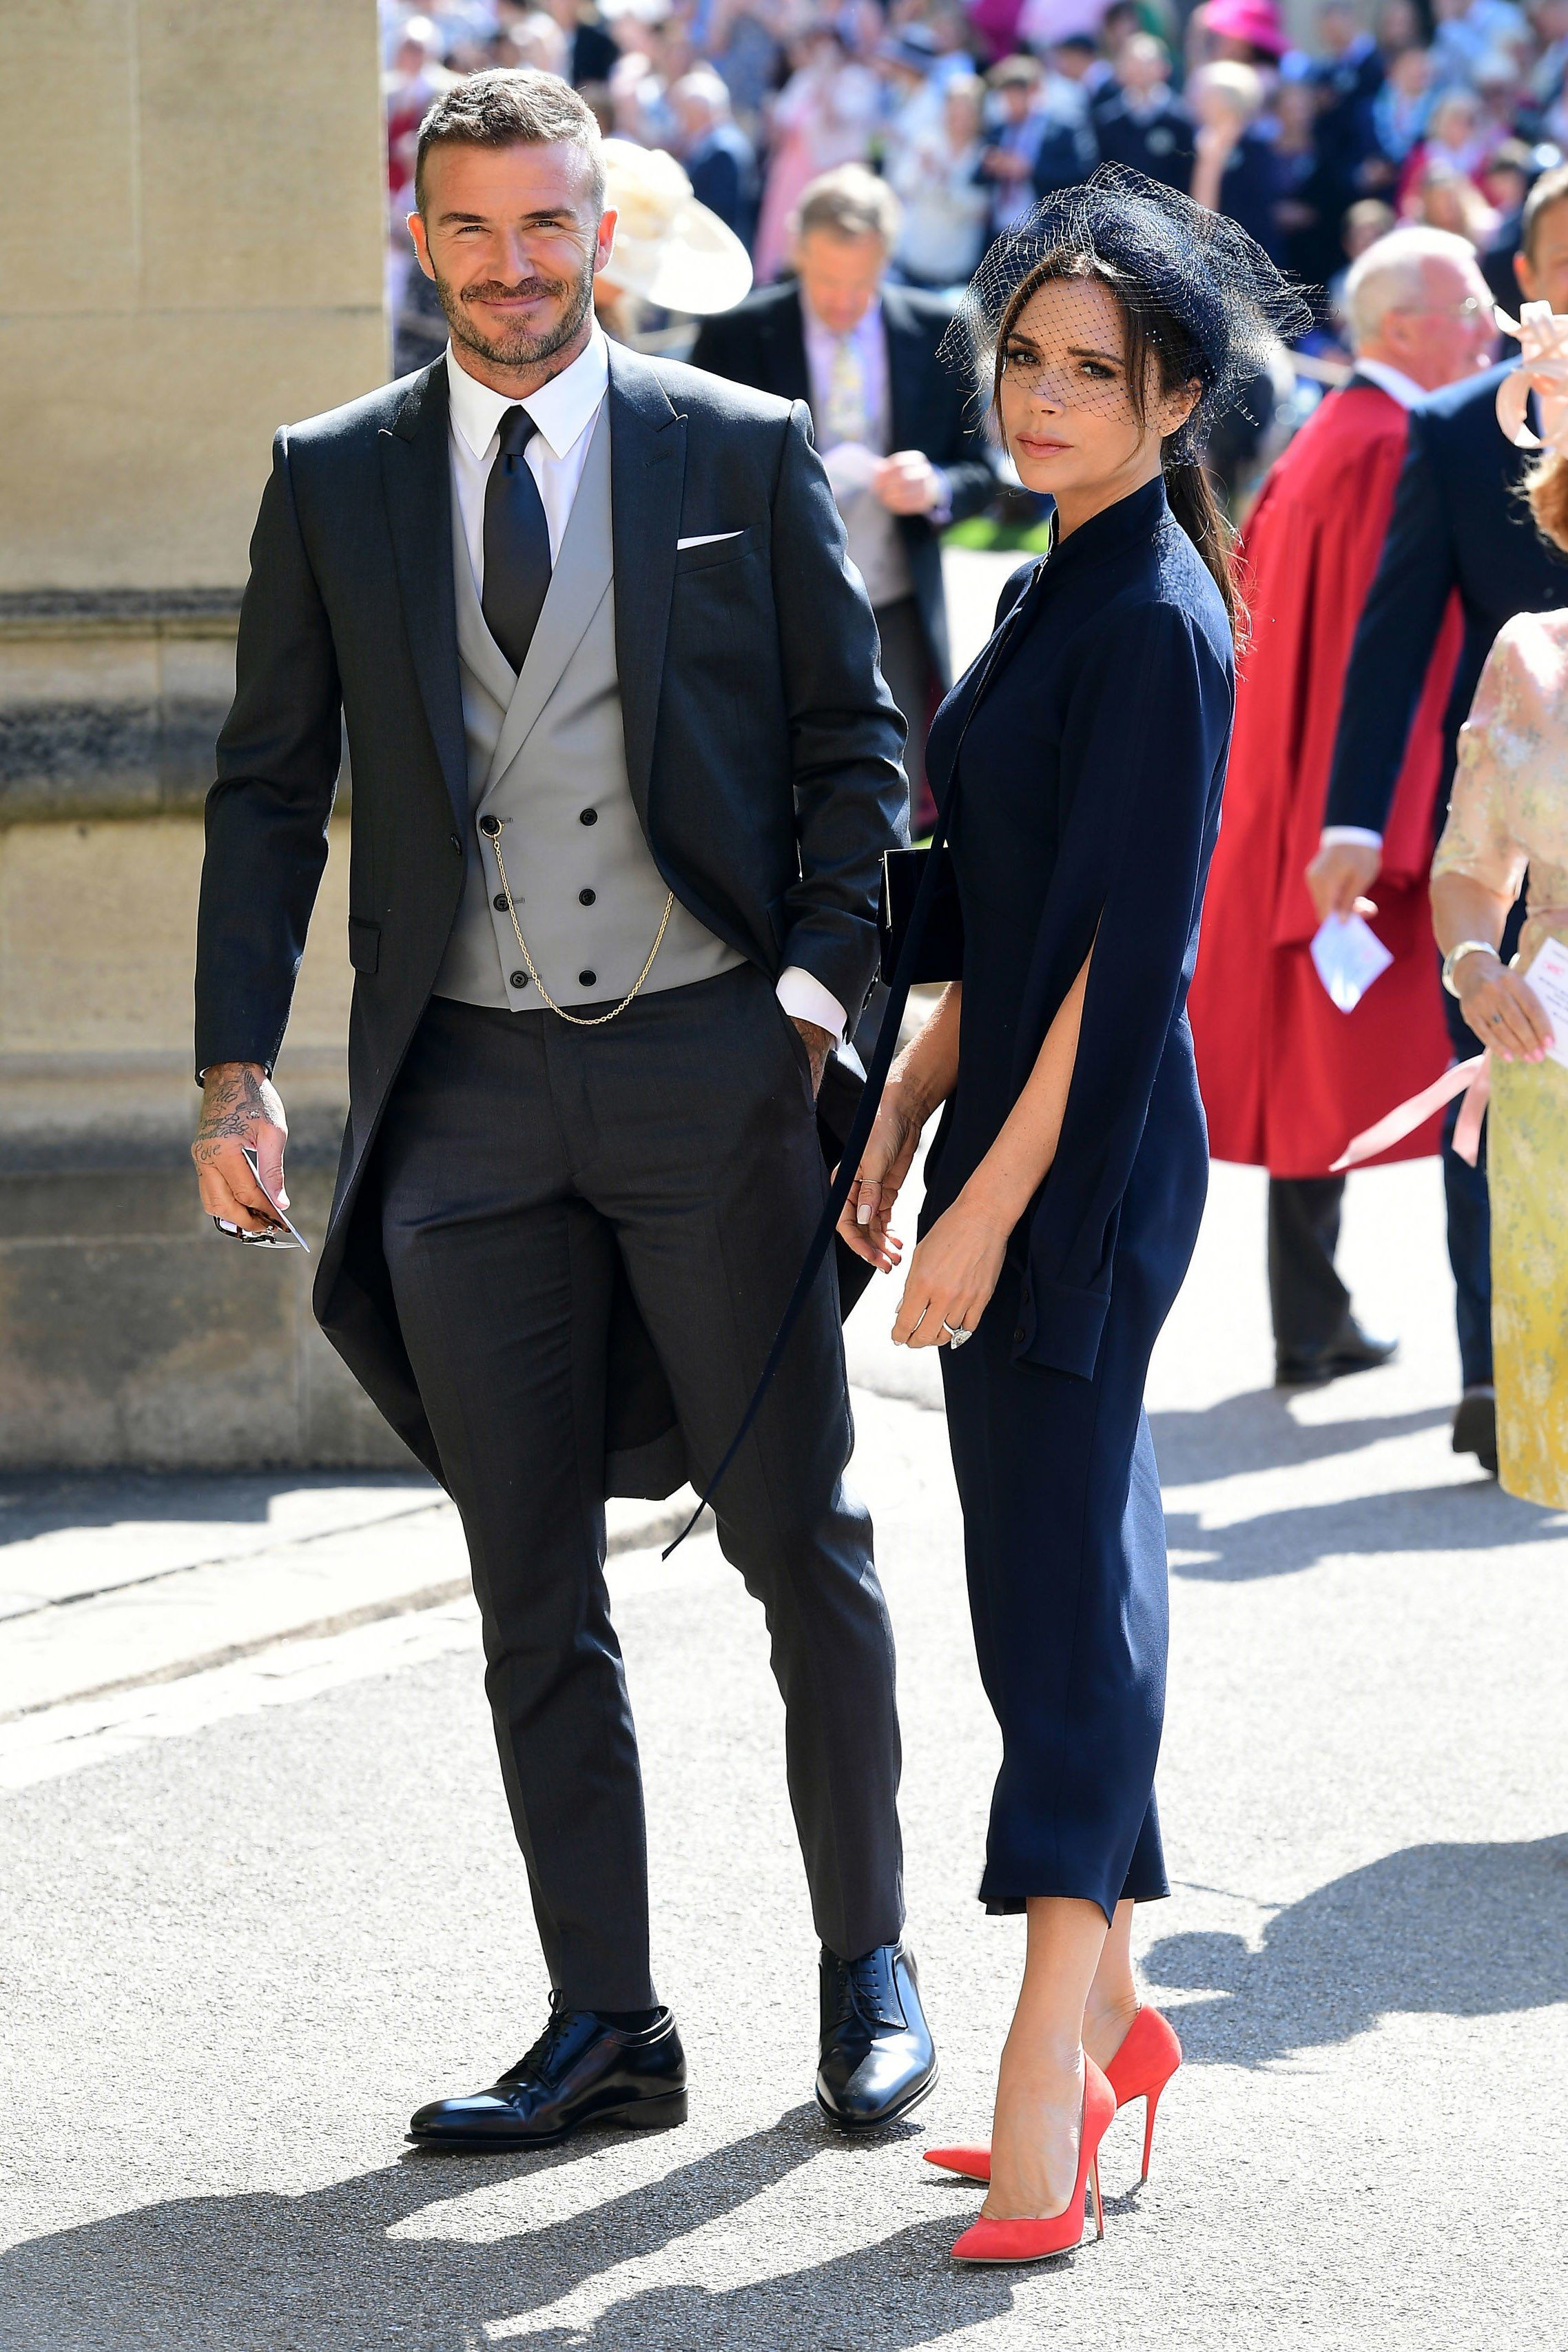 The BestDressed Guests at the Royal Wedding in 2020